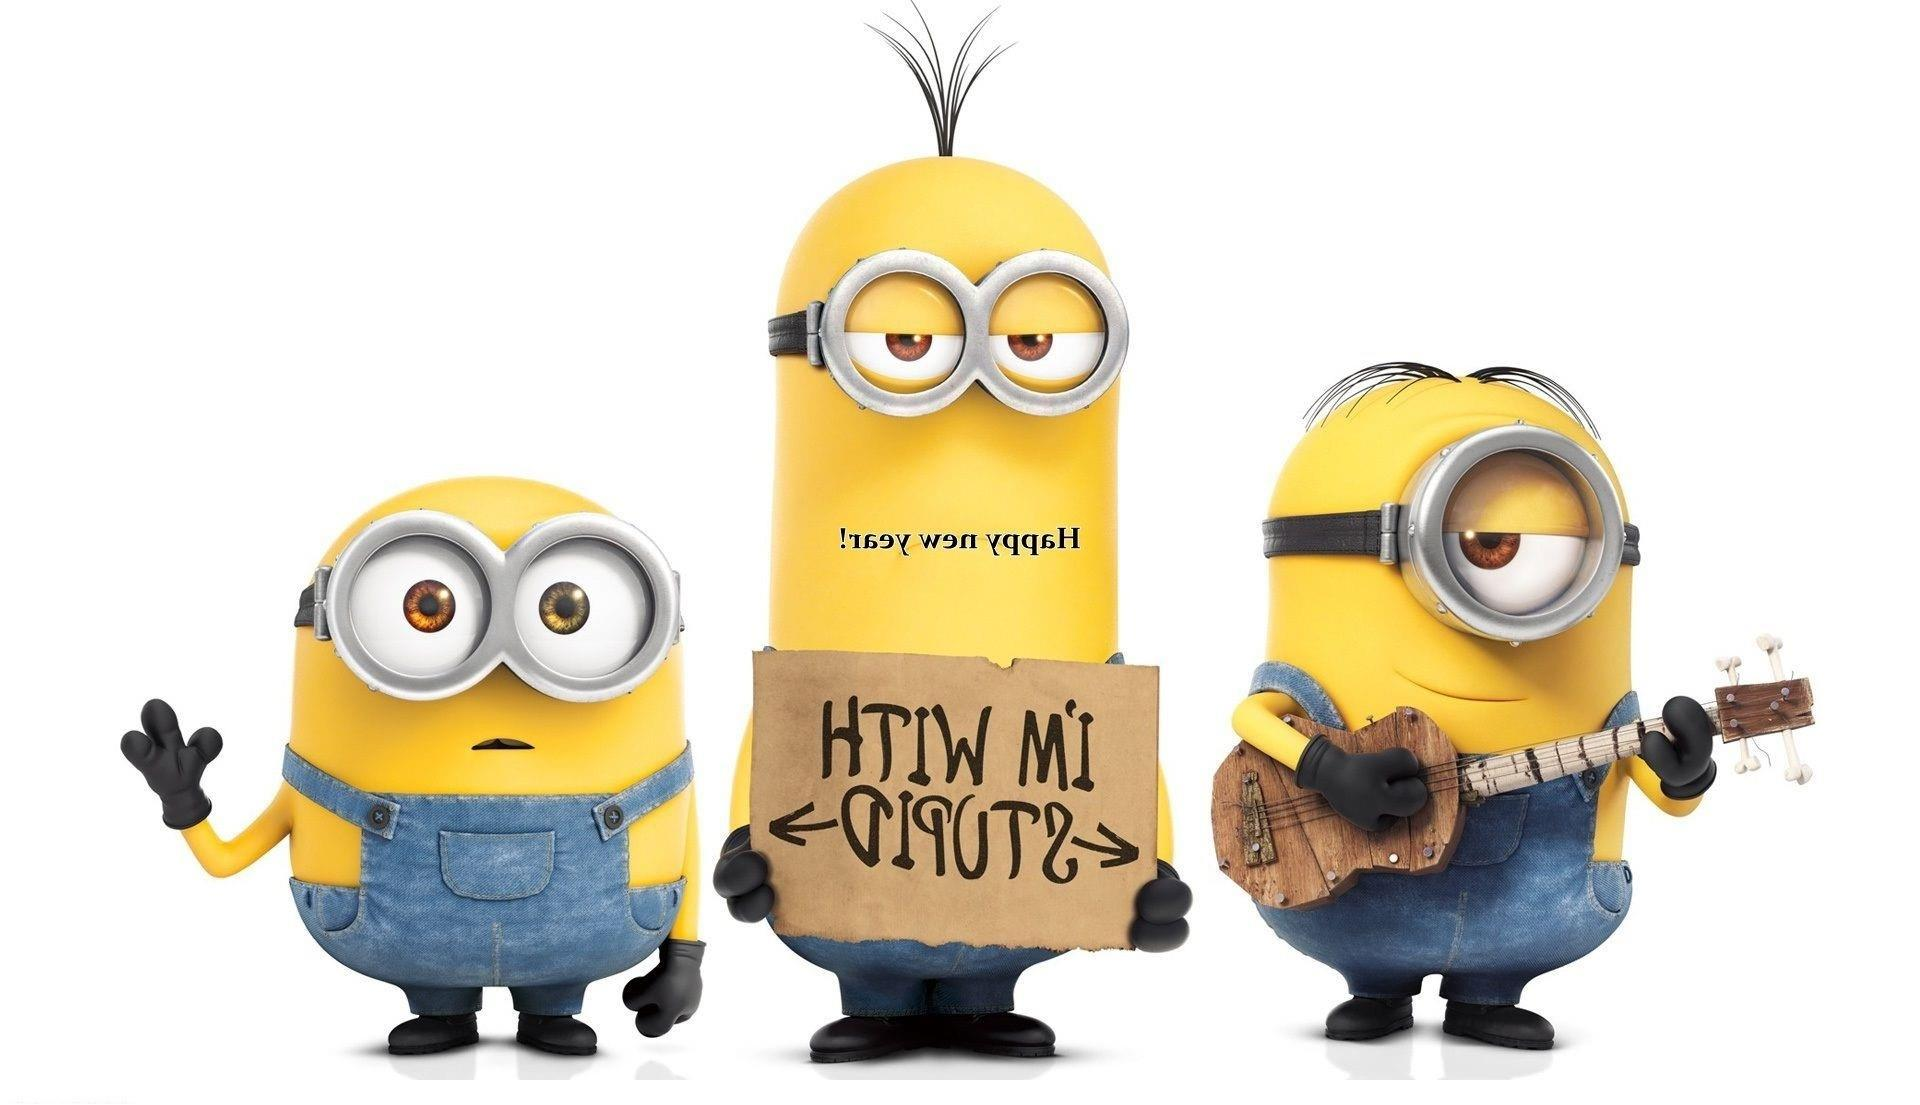 Funny Minions With I M Stupid Face